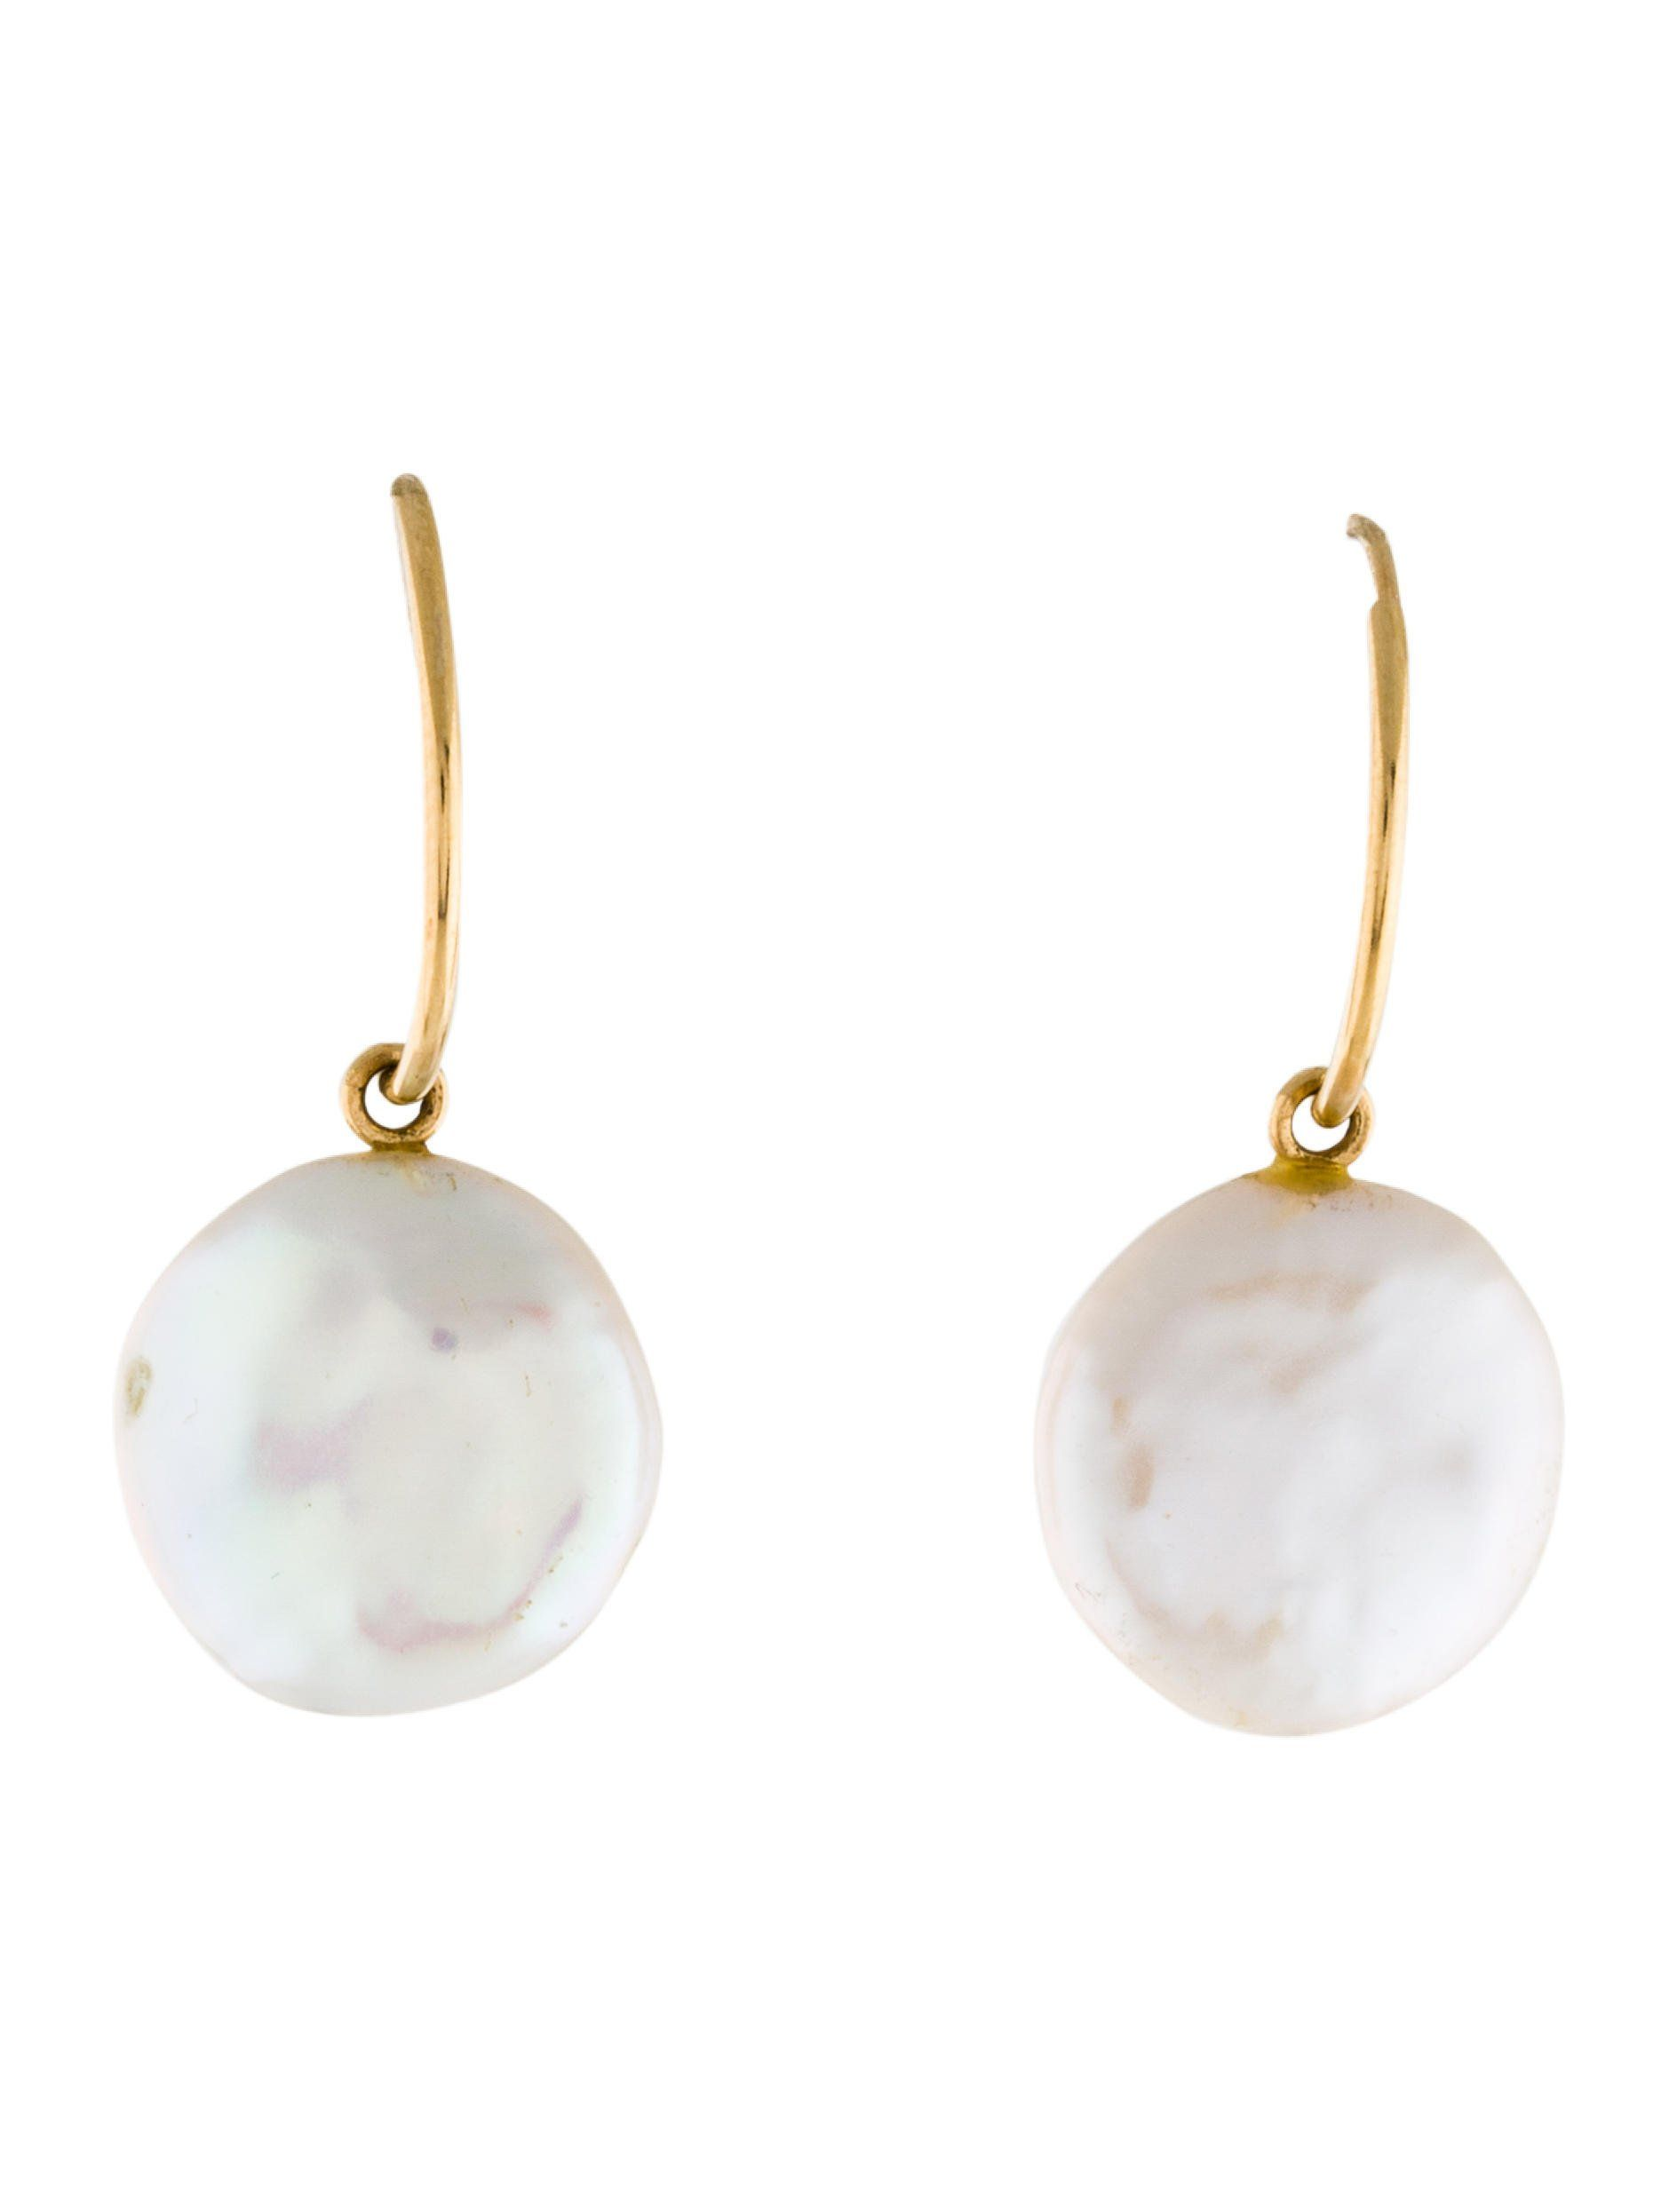 Anemone earrings 14k gold filled and freshwater pearl